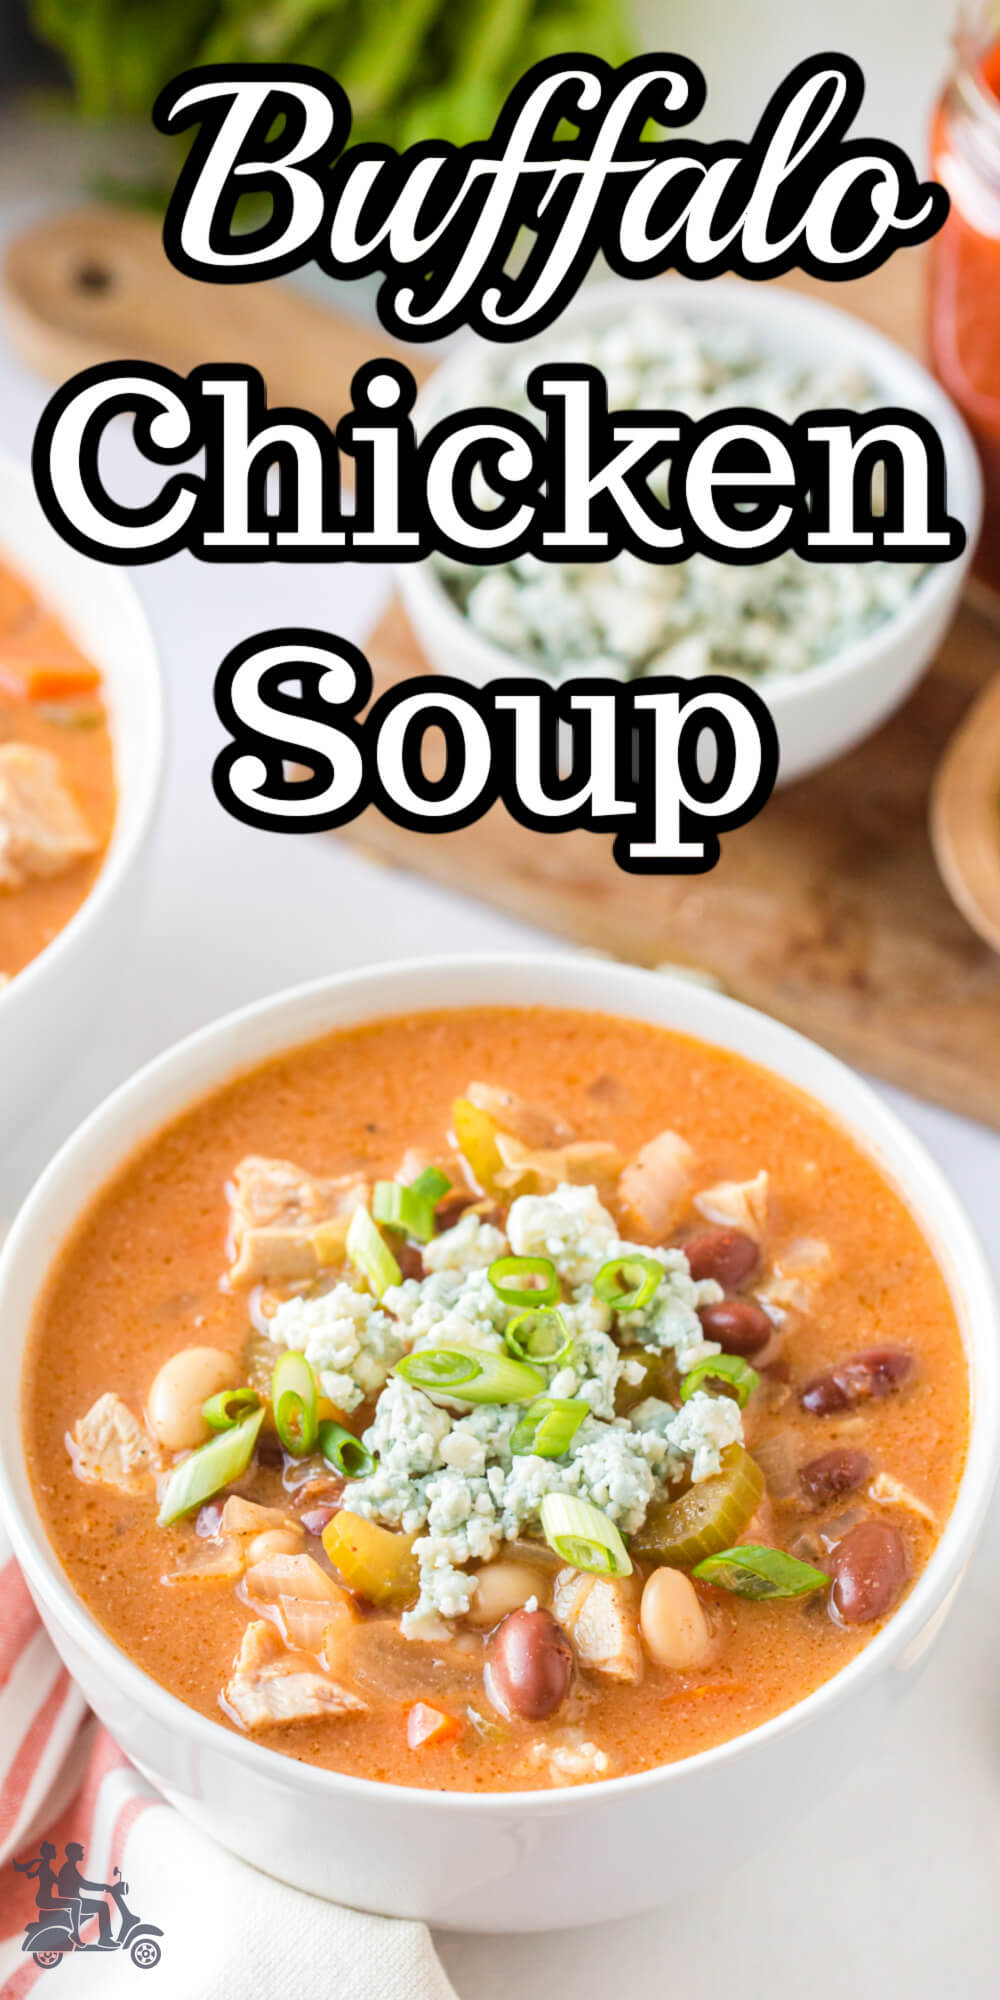 This hearty soup combines the classic buffalo chicken flavors. It's tangy, savory, and sure to please the hot wing lover. The soup is bisque like with a delicious creamy texture and spicy enough to please the hot sauce fan but mild enough for the whole family.